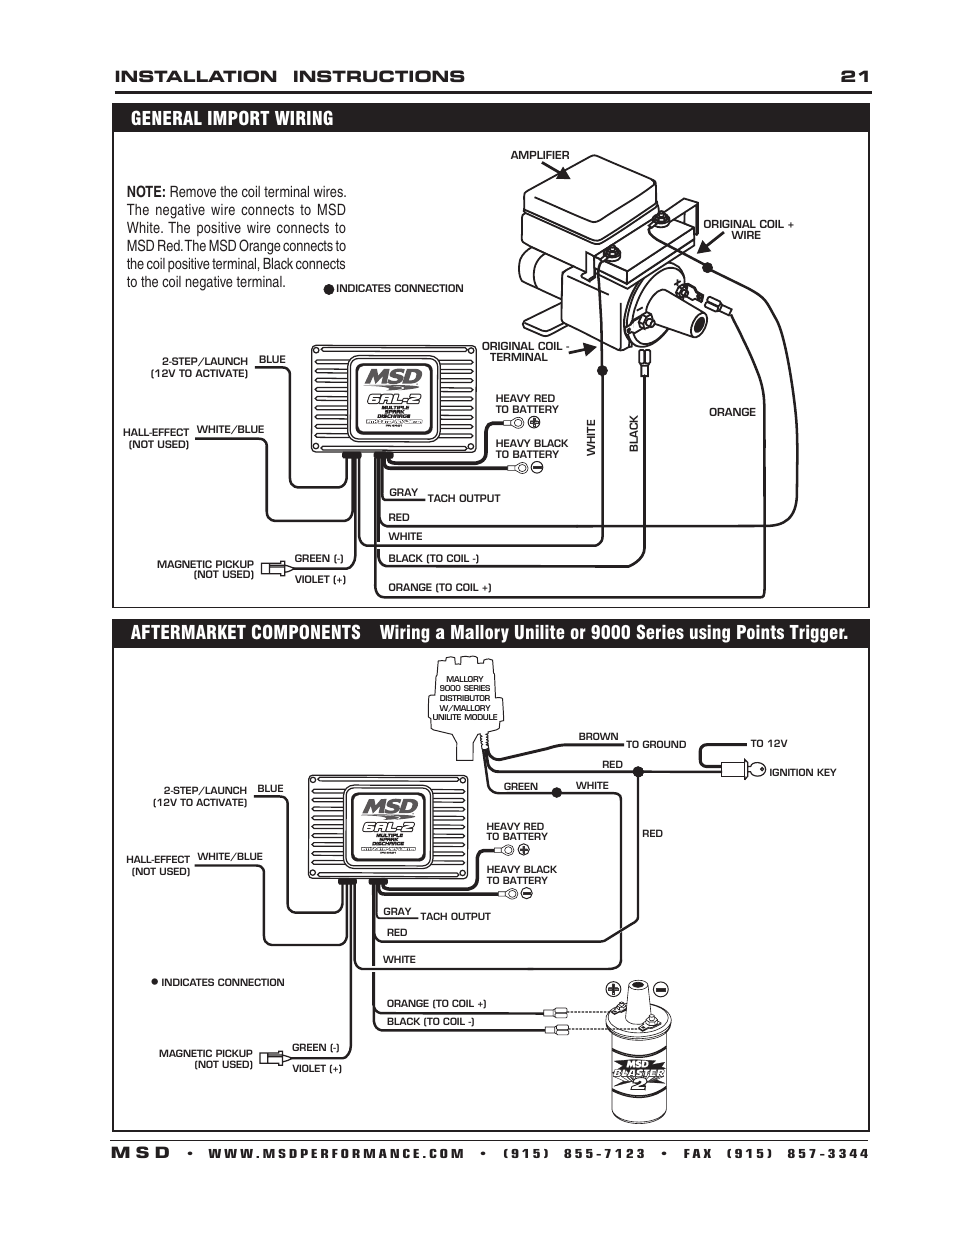 mallory 9000 wiring diagram